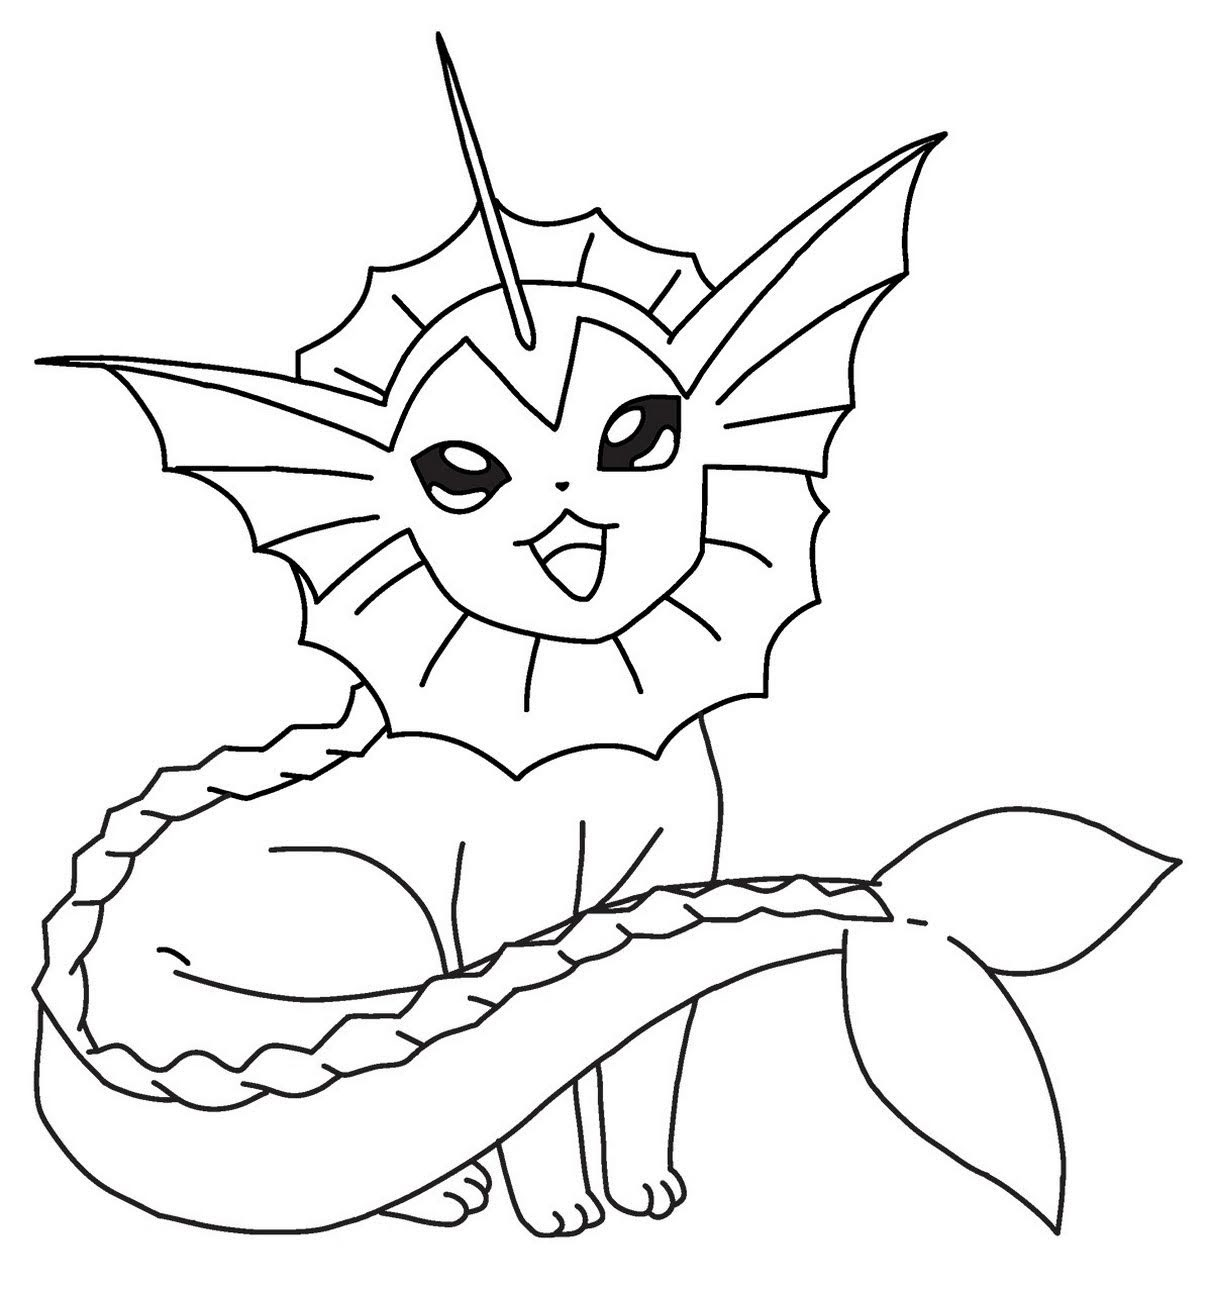 free coloring pokemon pages pokemon coloring pages join your favorite pokemon on an pokemon coloring pages free